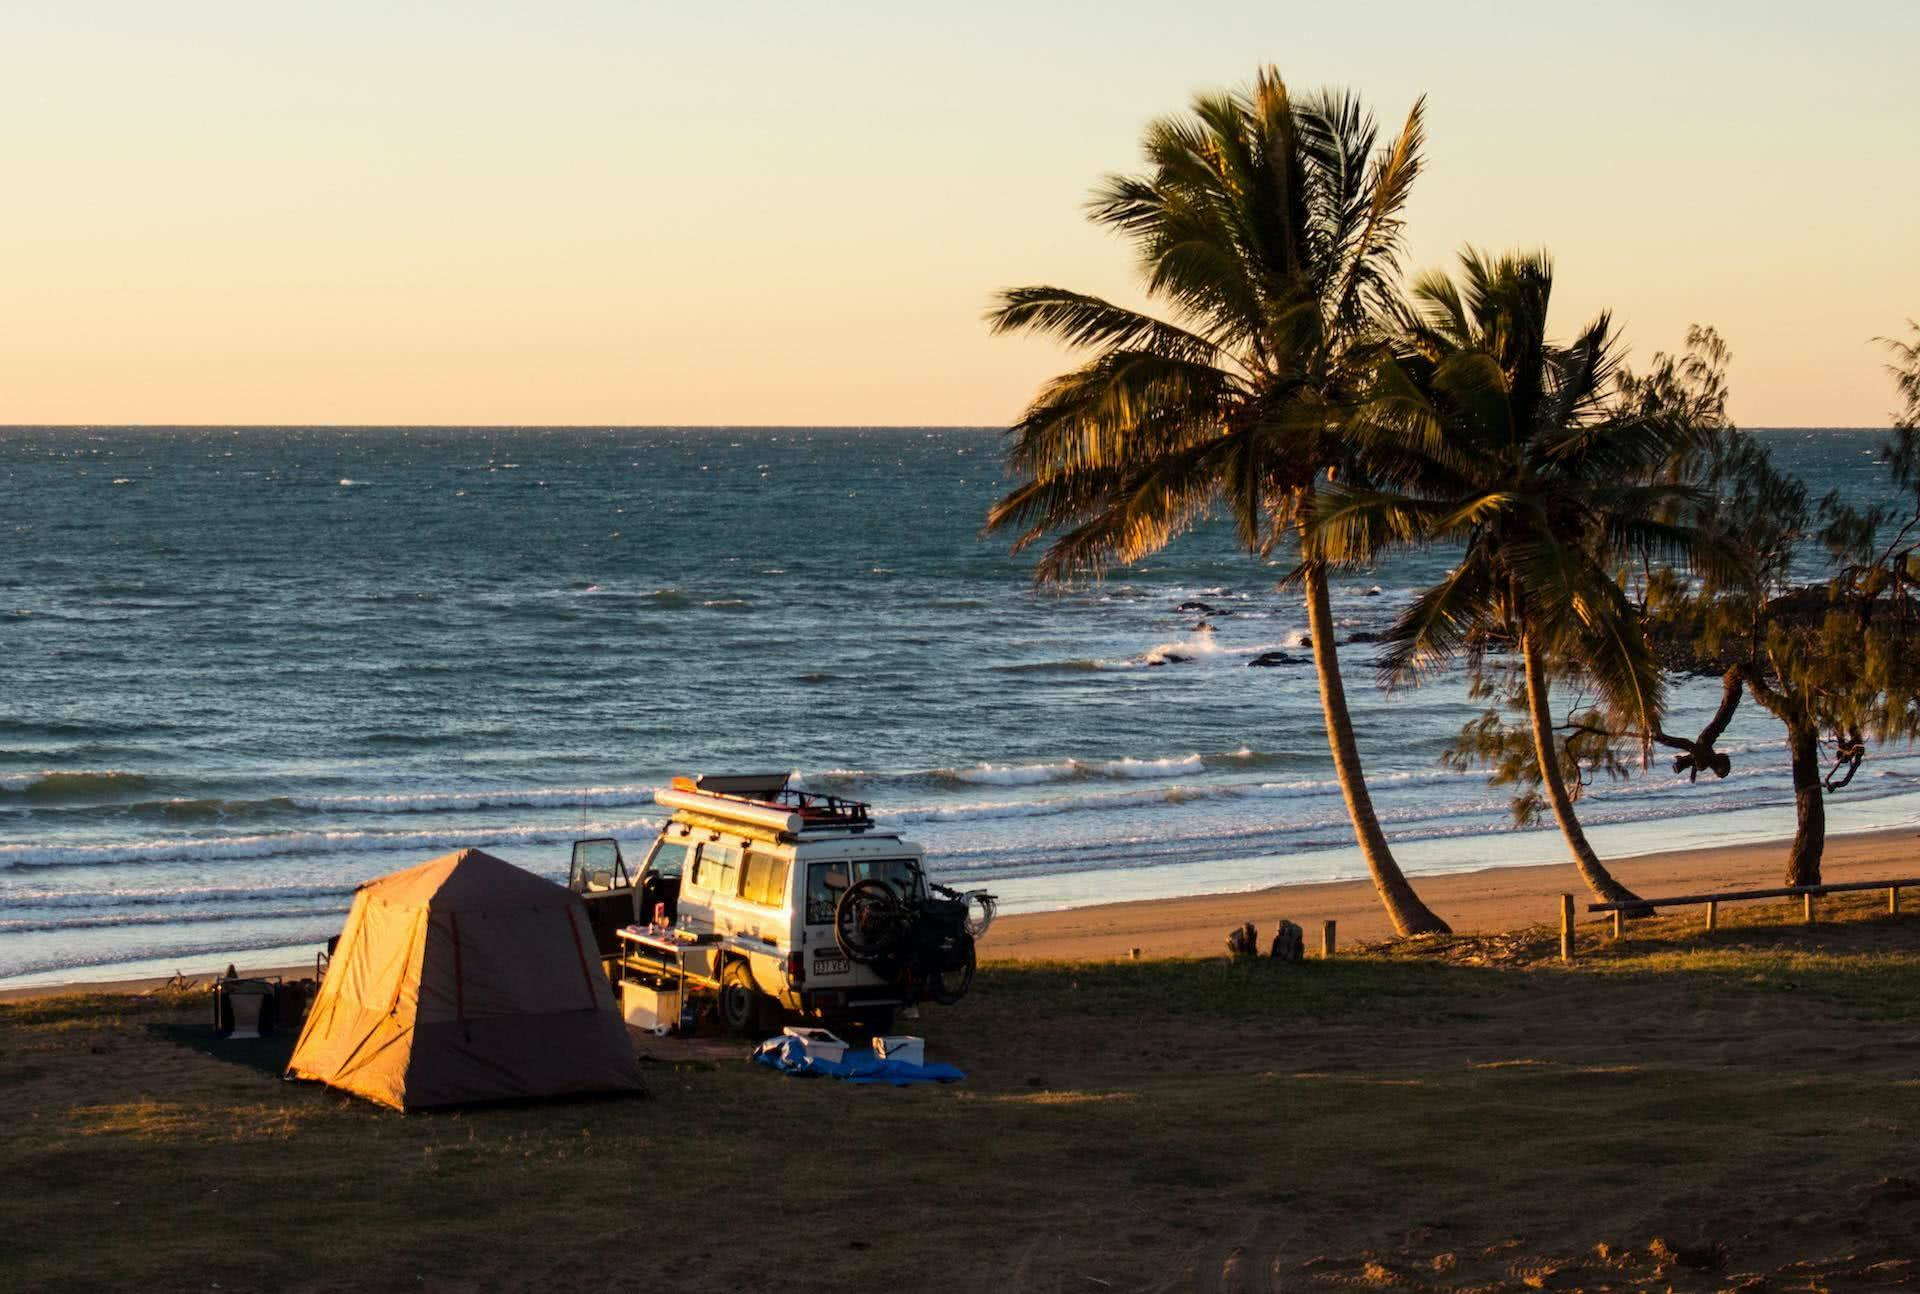 notch point, jess & jordy, @tequilantroopy, queensland, campground